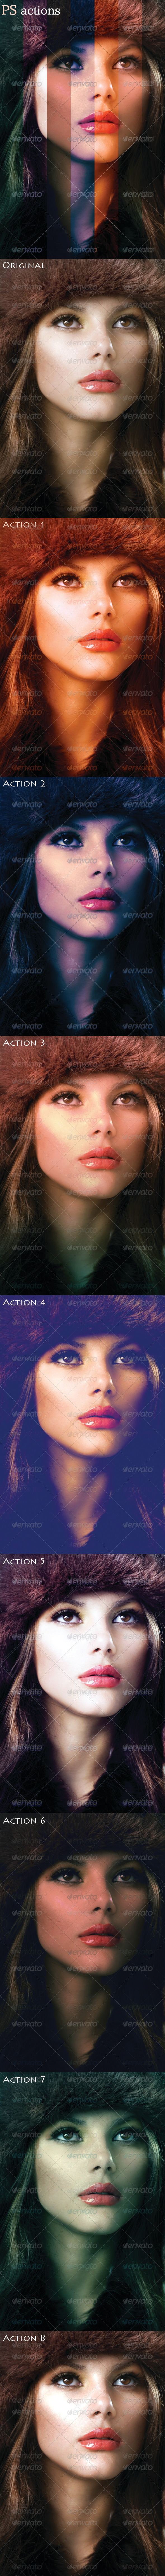 GraphicRiver Photo Effects PS Actions 4081163